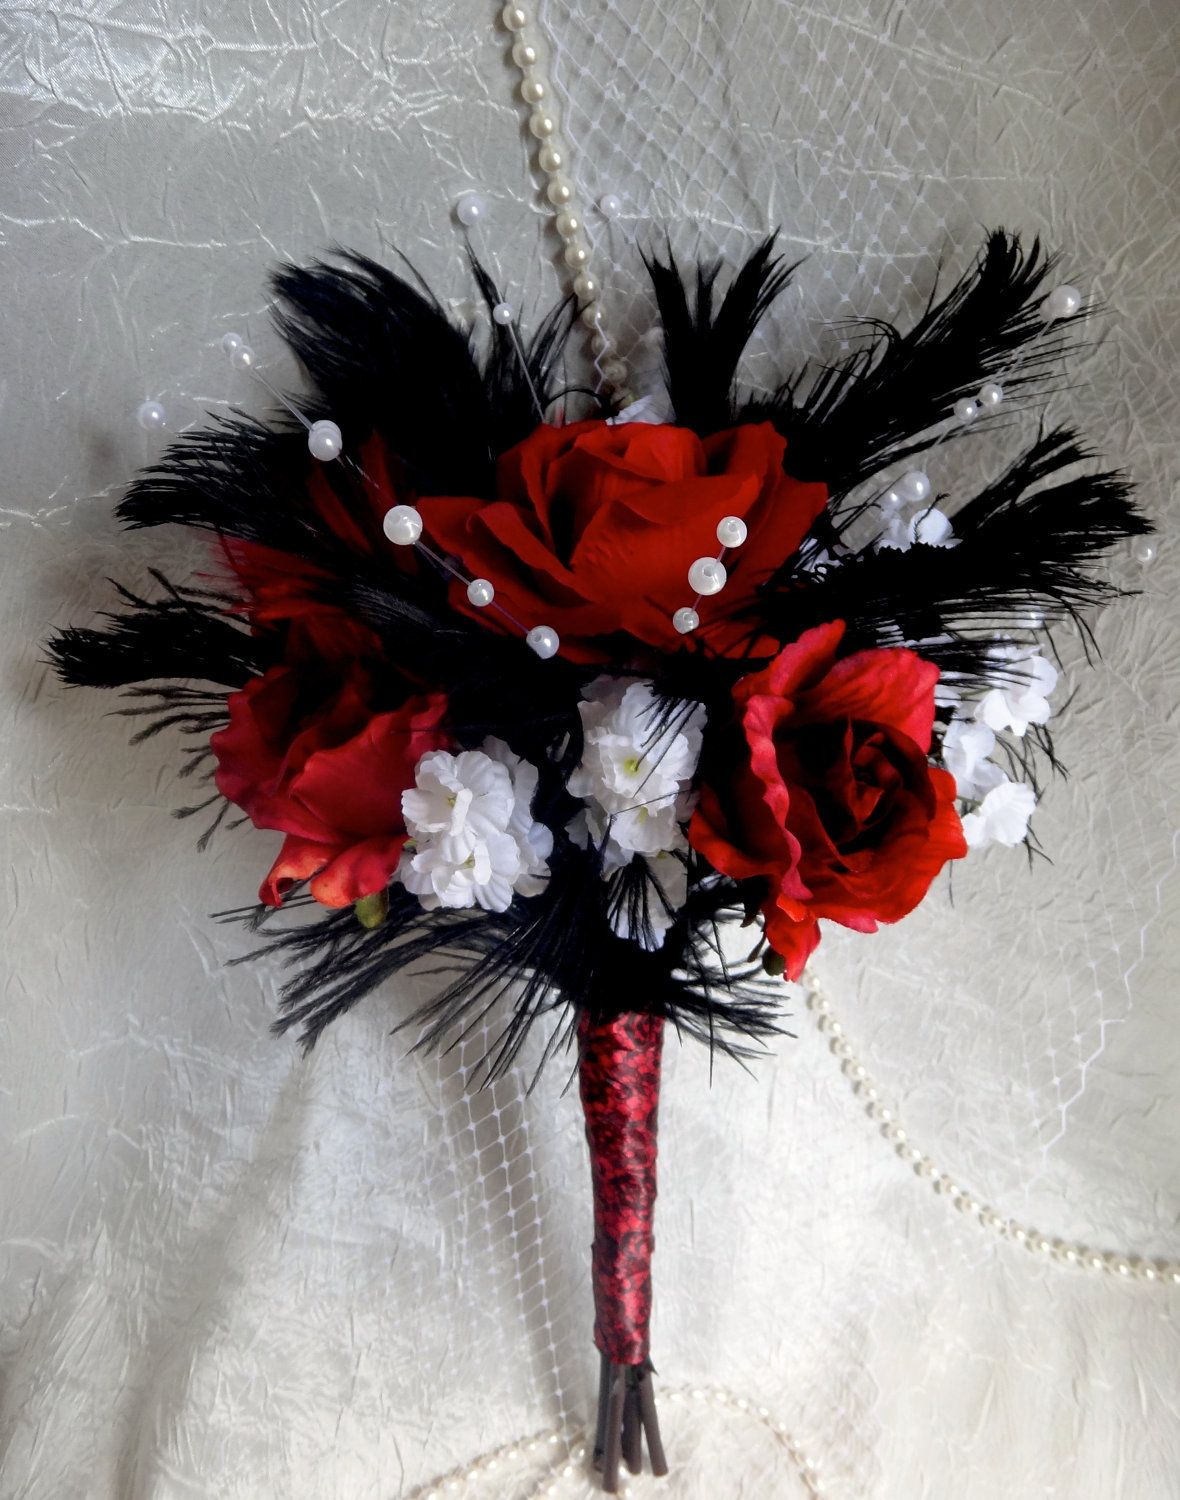 Red Rose Black Bridal Bouquet Ostrich Fathers White Flower And Pearl Accent